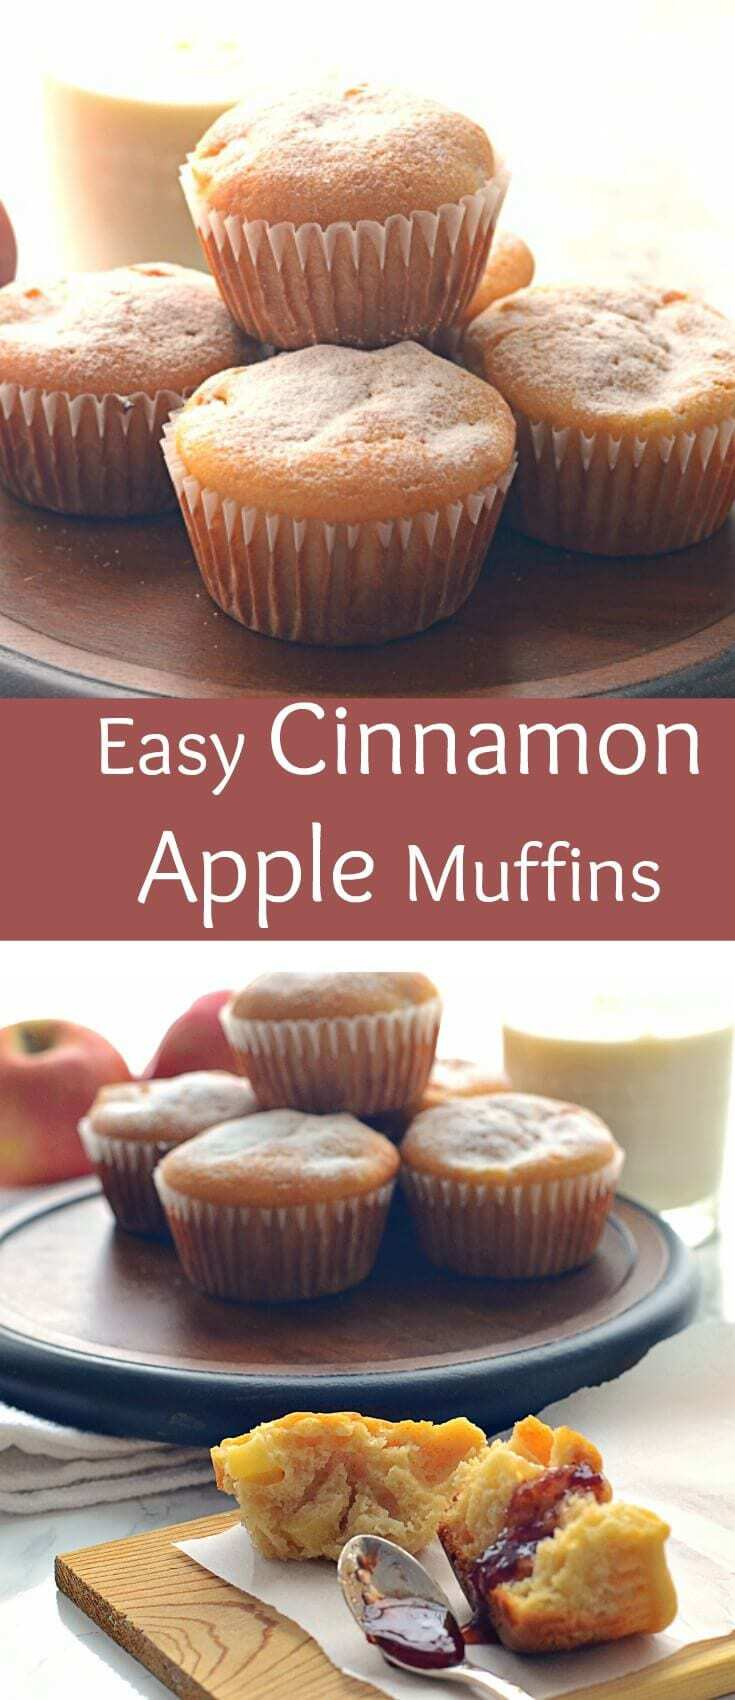 If you're looking for a quick and delicious dessert, these cinnamon apple muffins are a quick and easy bake. Filled with crispy apple and aromatic cinnamon, this dessert is a crowd pleaser.